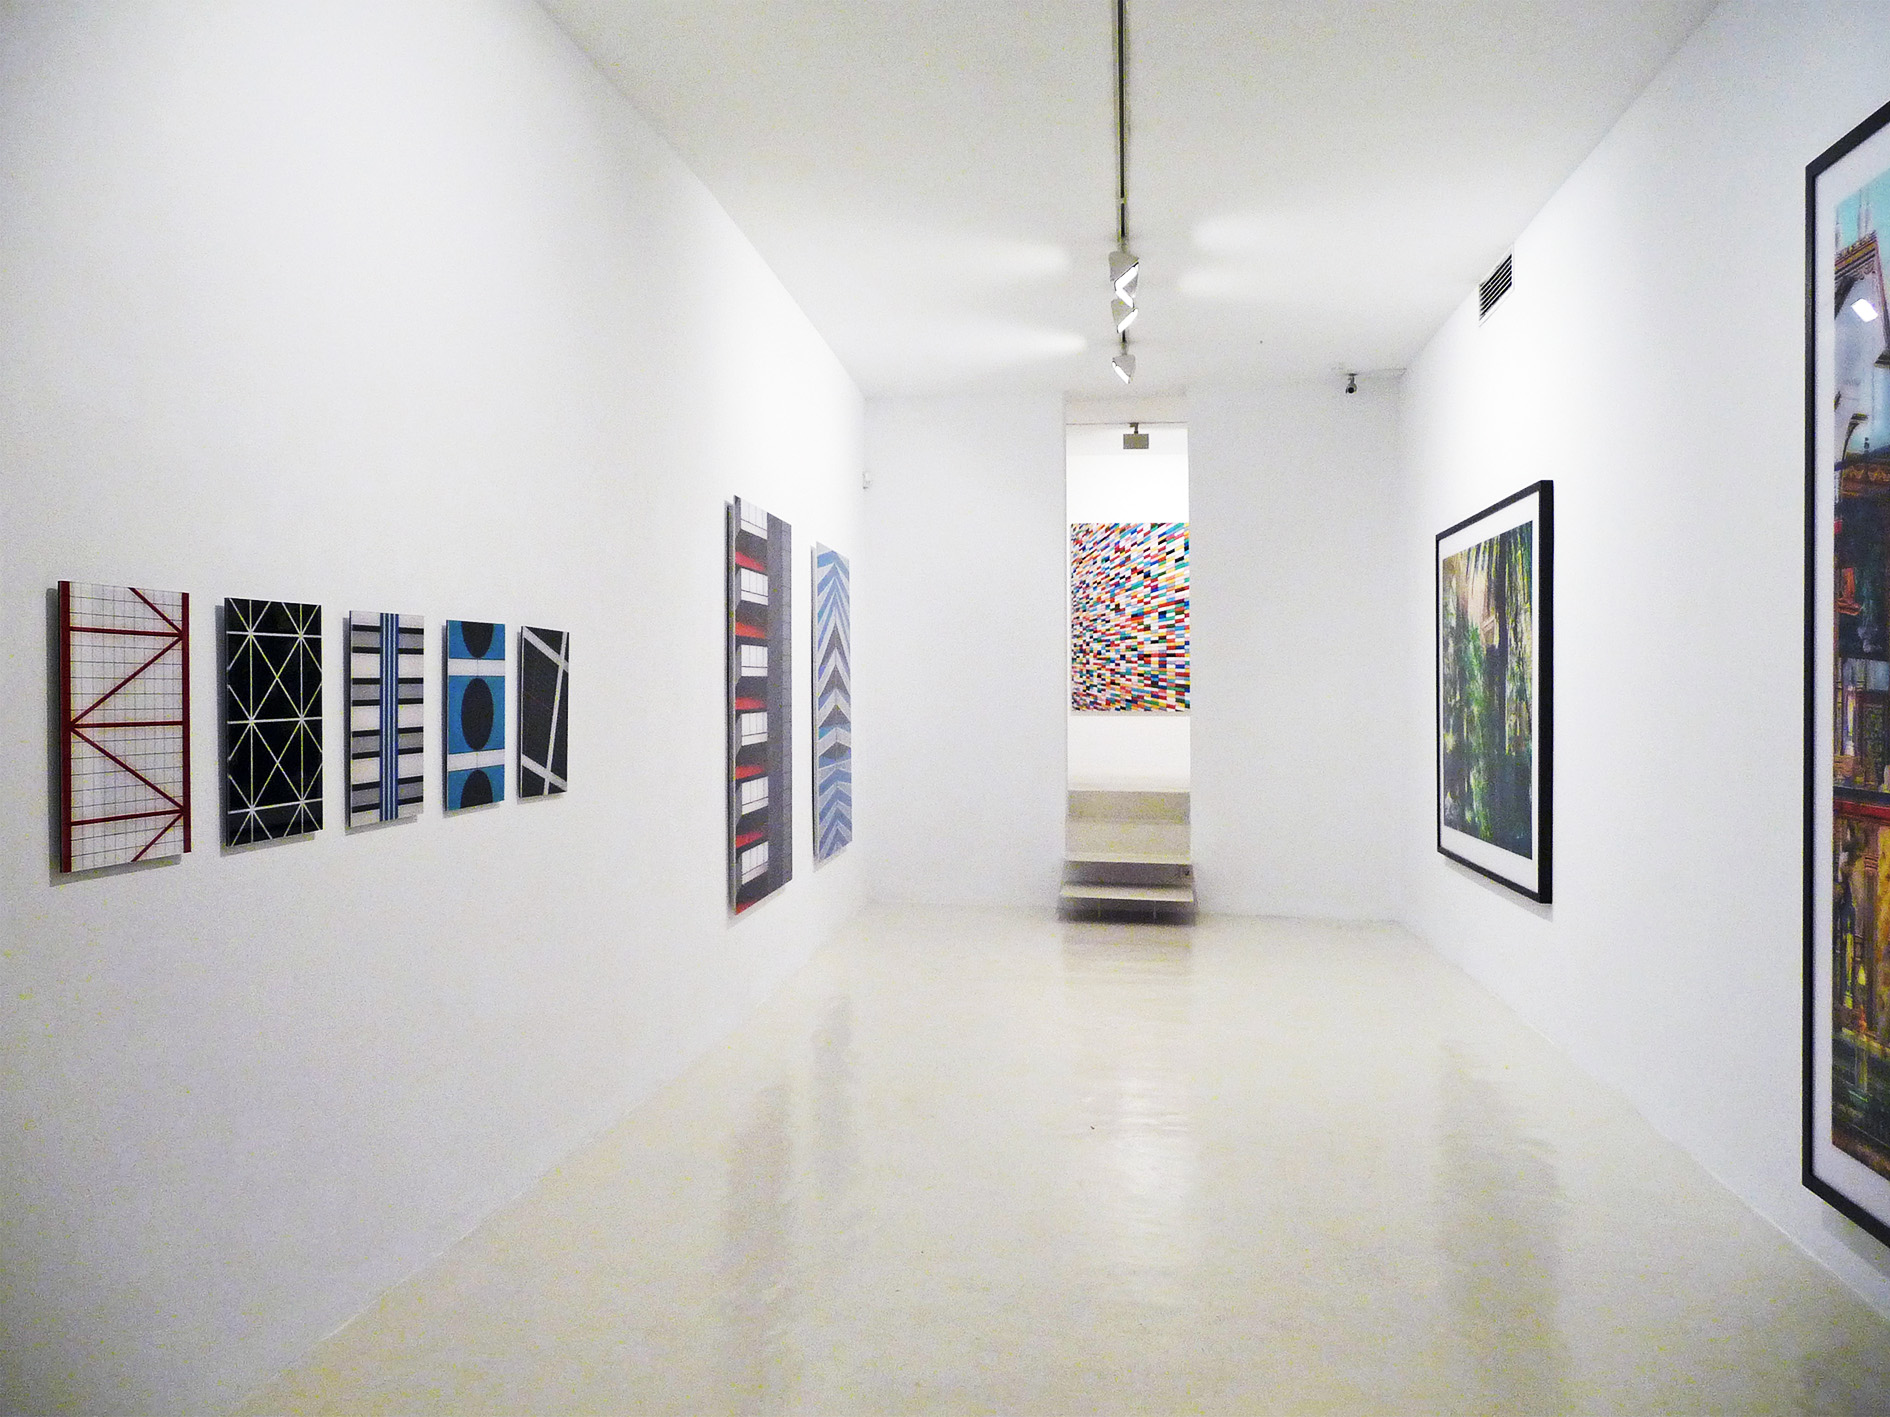 Exhibition view from Roland Fischer, 2009